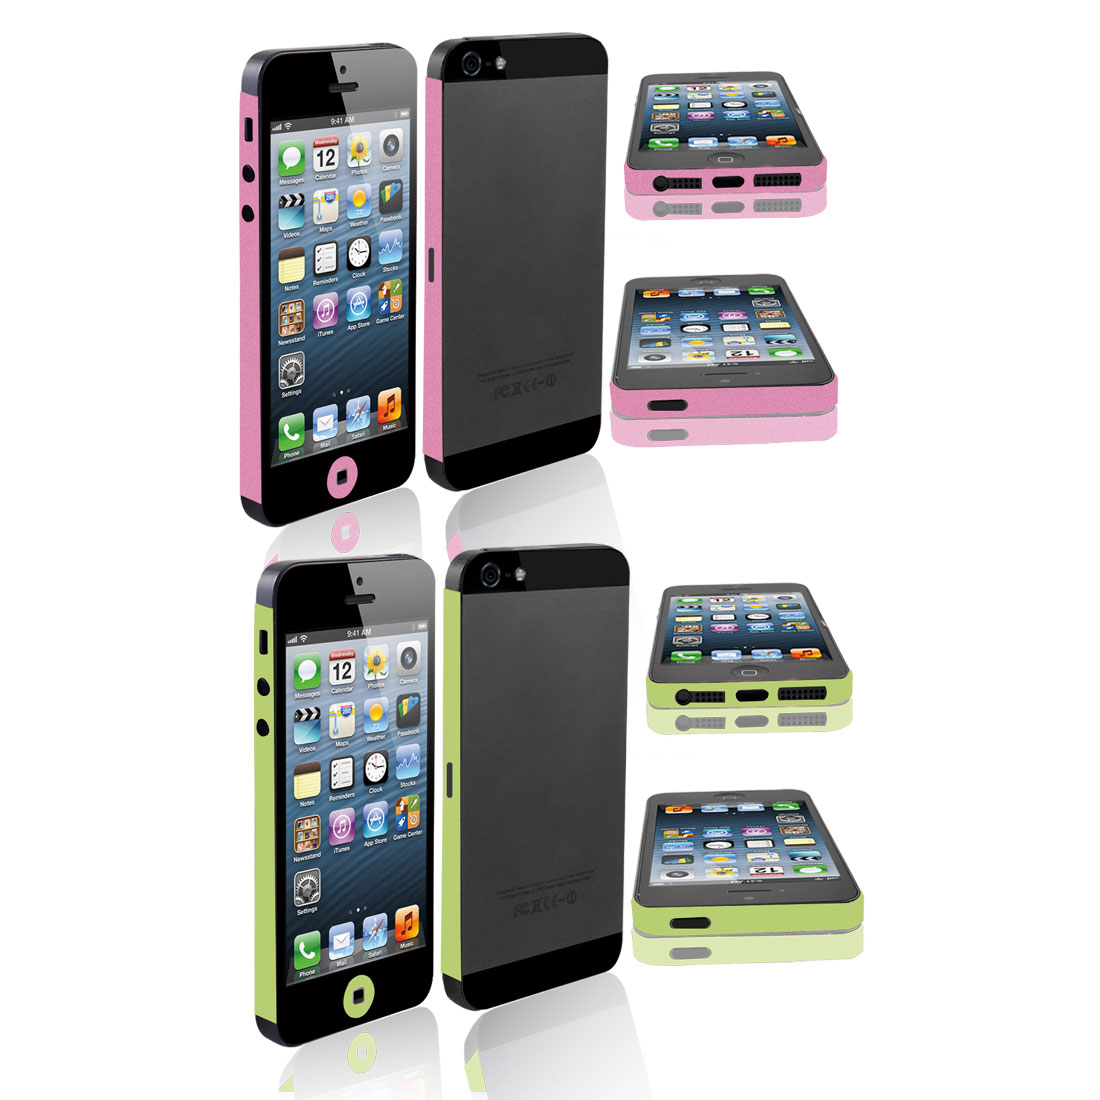 2 Pcs Frame Edge Wrap Decal Button Sticker Shield Green Pink for iPhone 5 5G